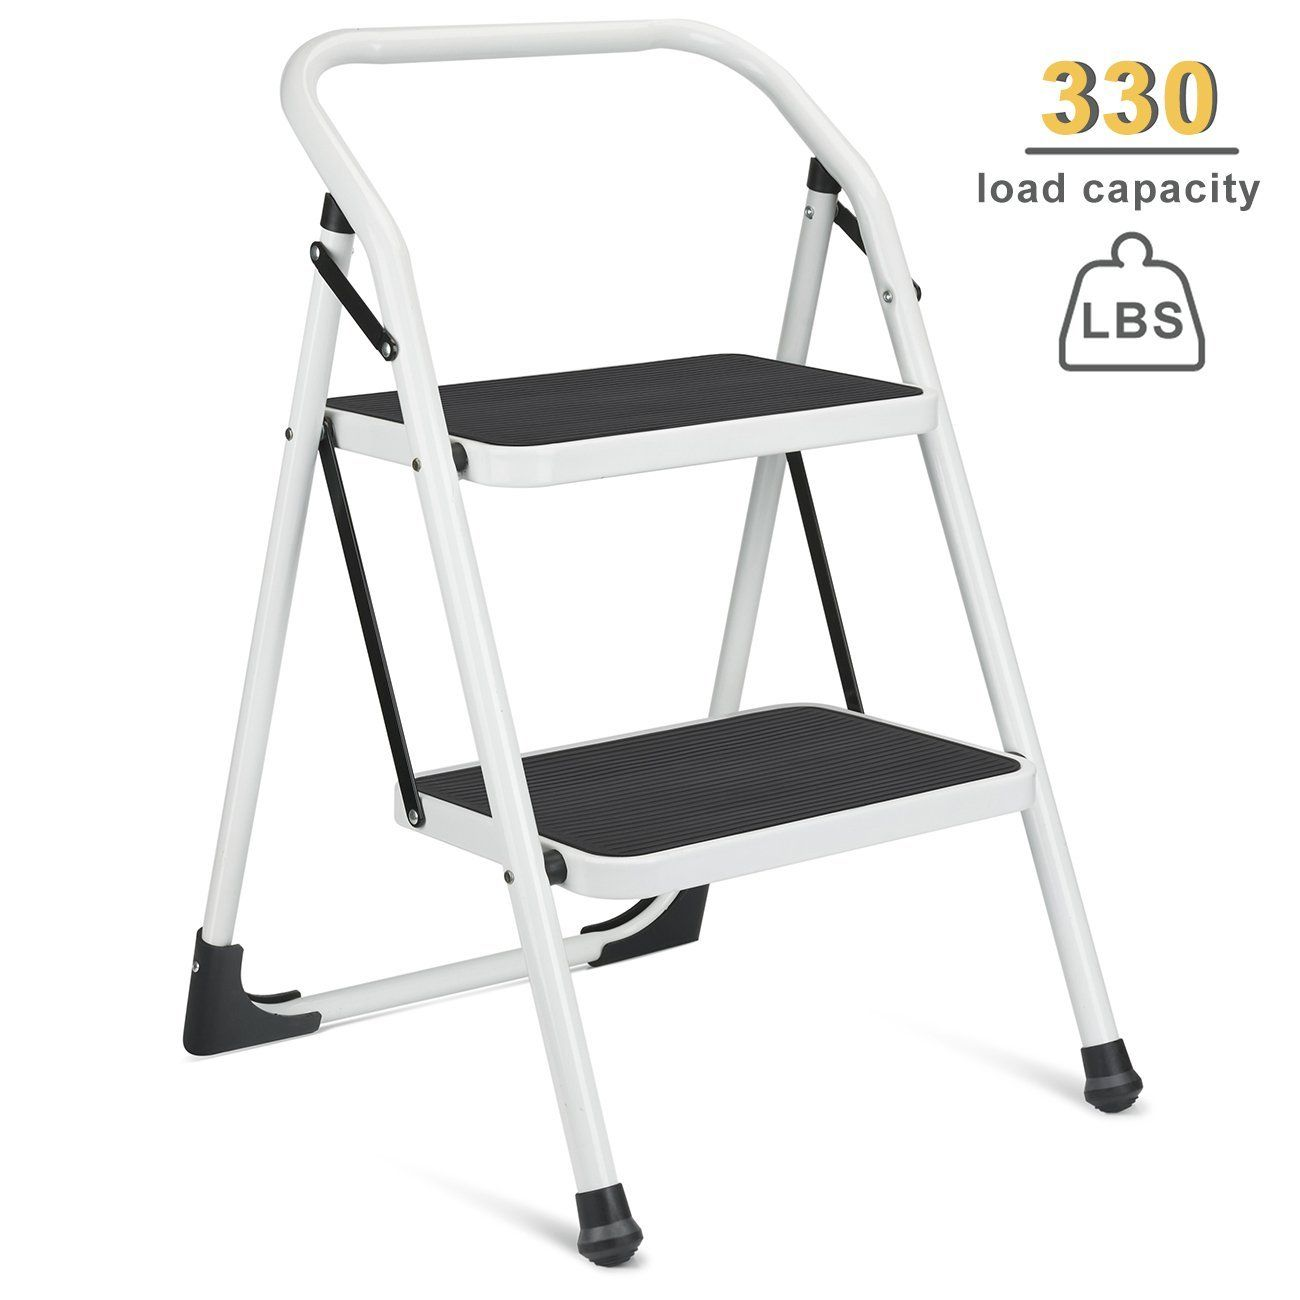 7 Best Step Ladder Reviews And Guide 2020 Recommended Step